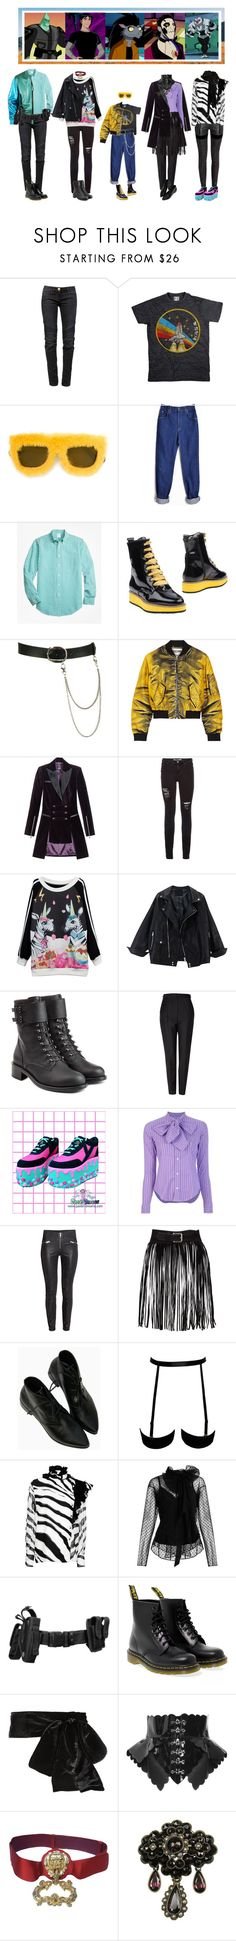 """""""The Second Chance's Team"""" by everysimpleplan ❤ liked on Polyvore featuring Levin, Balmain, Slave To Ancestors, Lee, Brooks Brothers, Wet Seal, Moschino, Burberry, Versus and Philosophy di Lorenzo Serafini"""